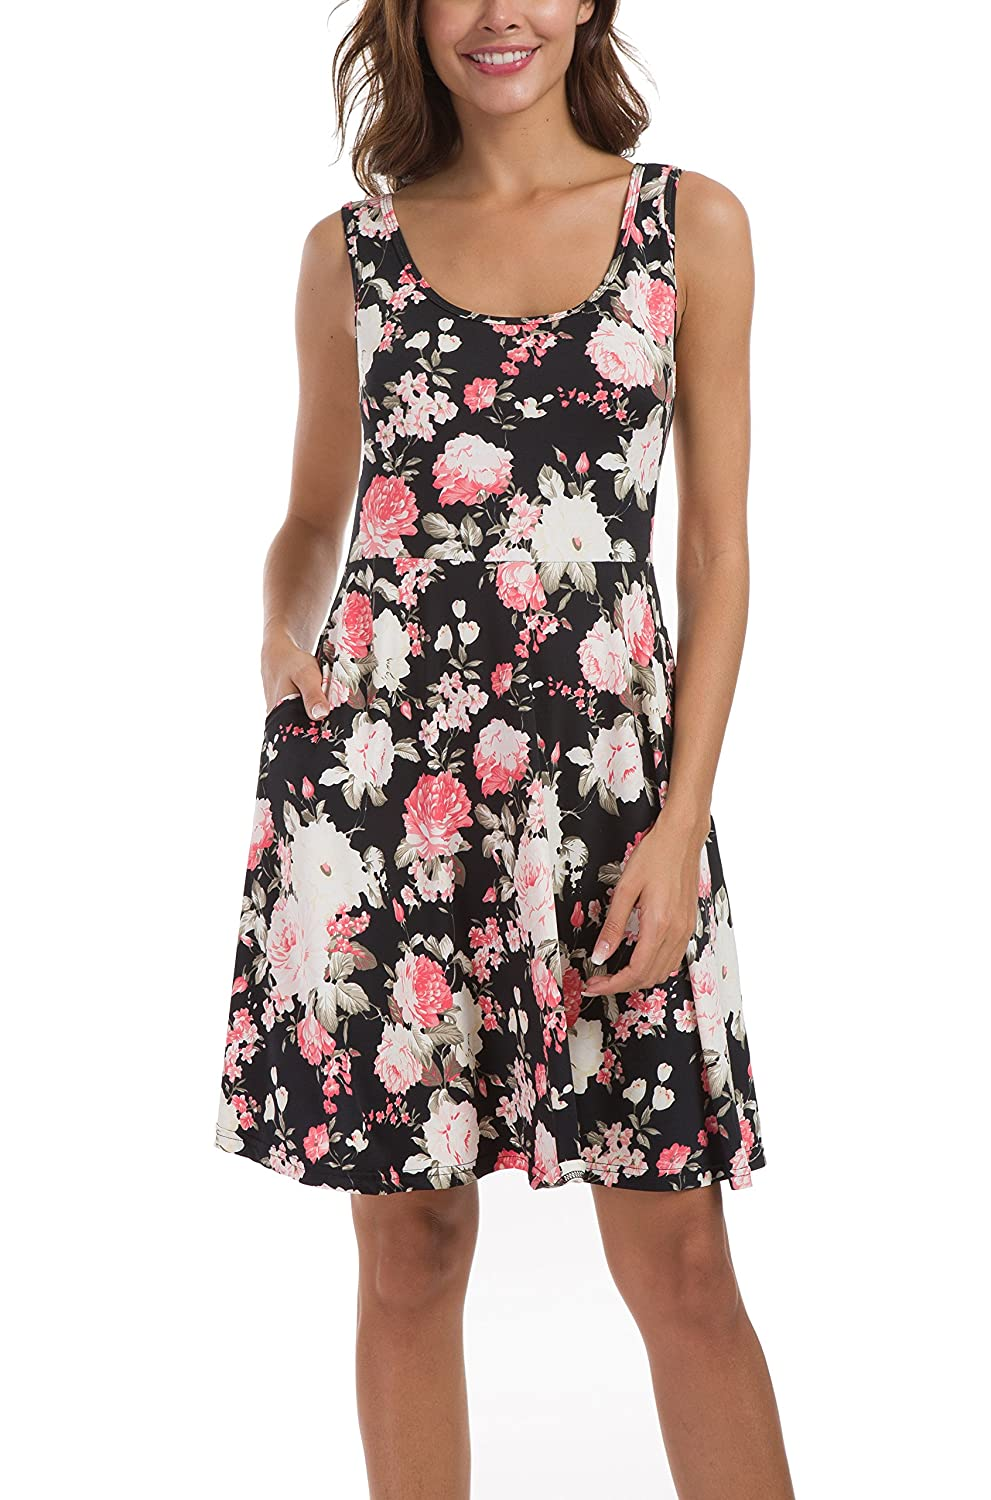 588a6390f Top 10 wholesale Womens Floral Dresses With Sleeves - Chinabrands.com